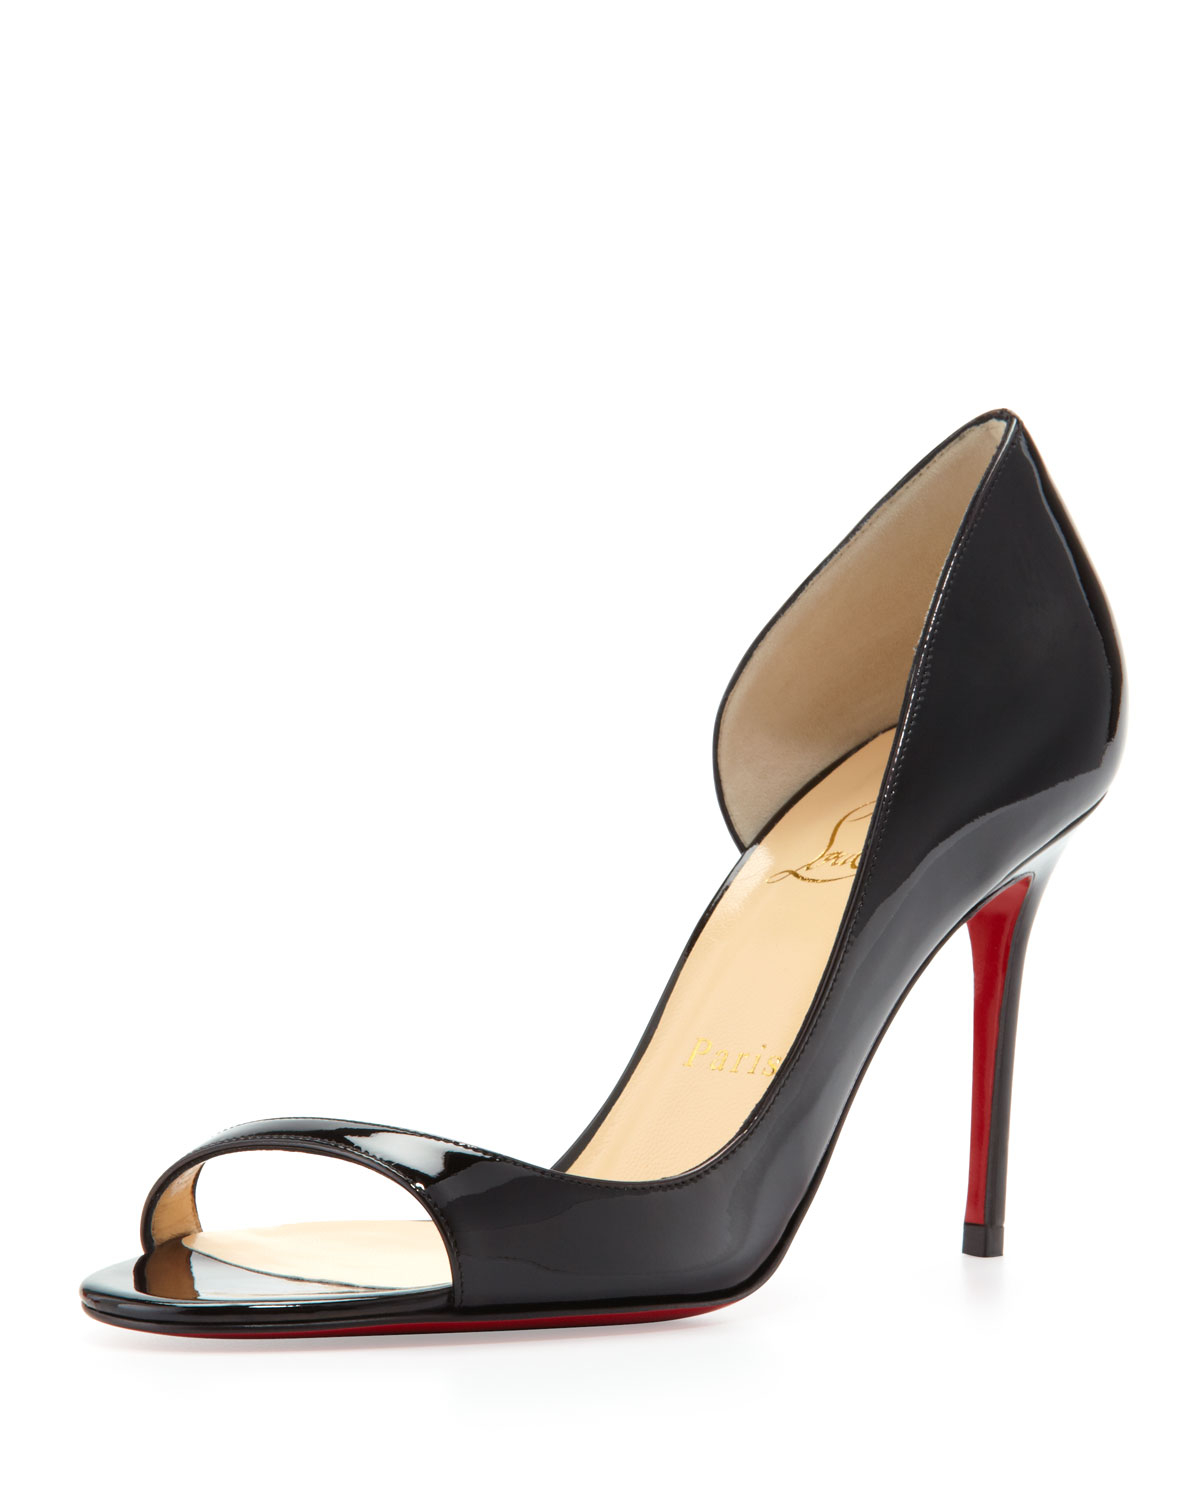 Black Patent Shoes Red Sole